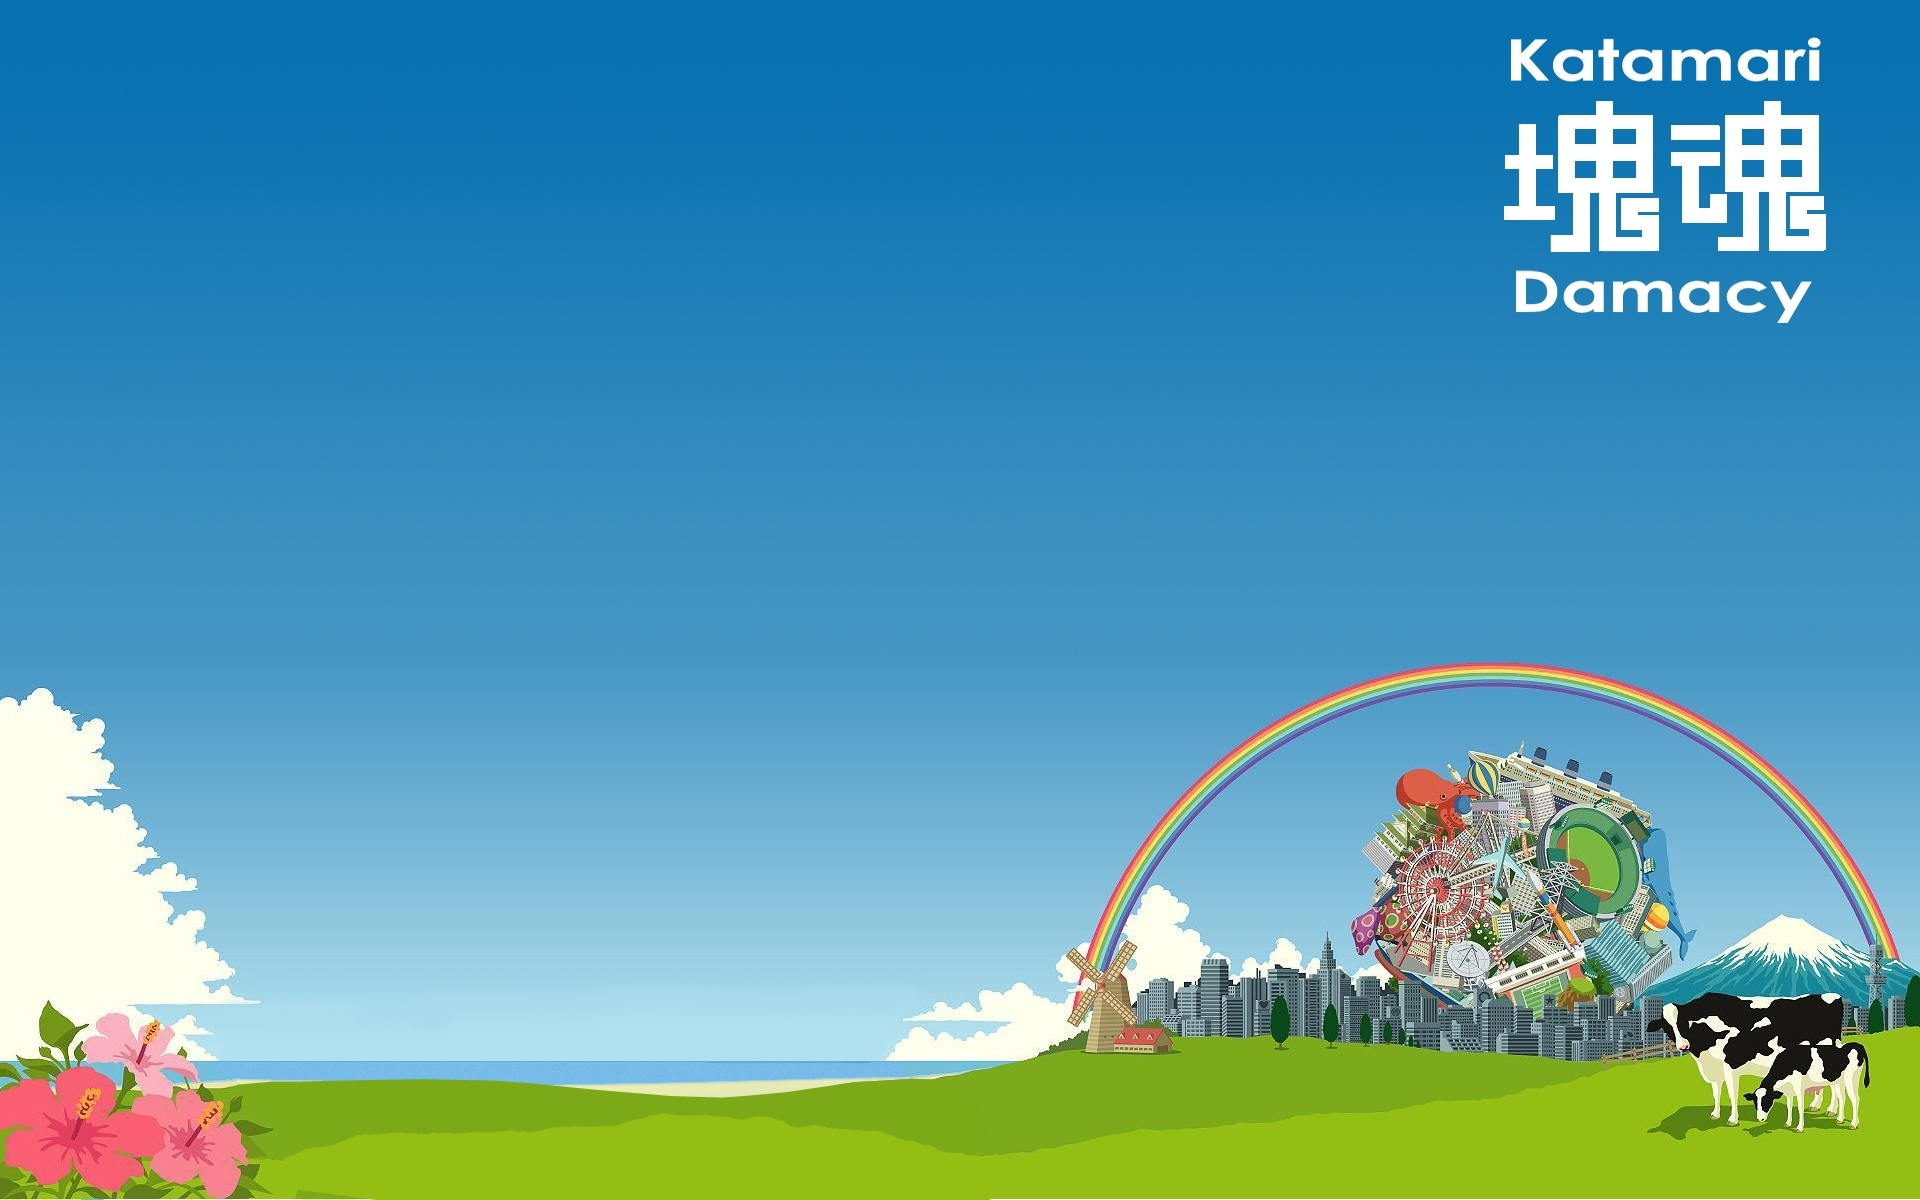 katamari damacy full hd wallpaper and background image | 1920x1200